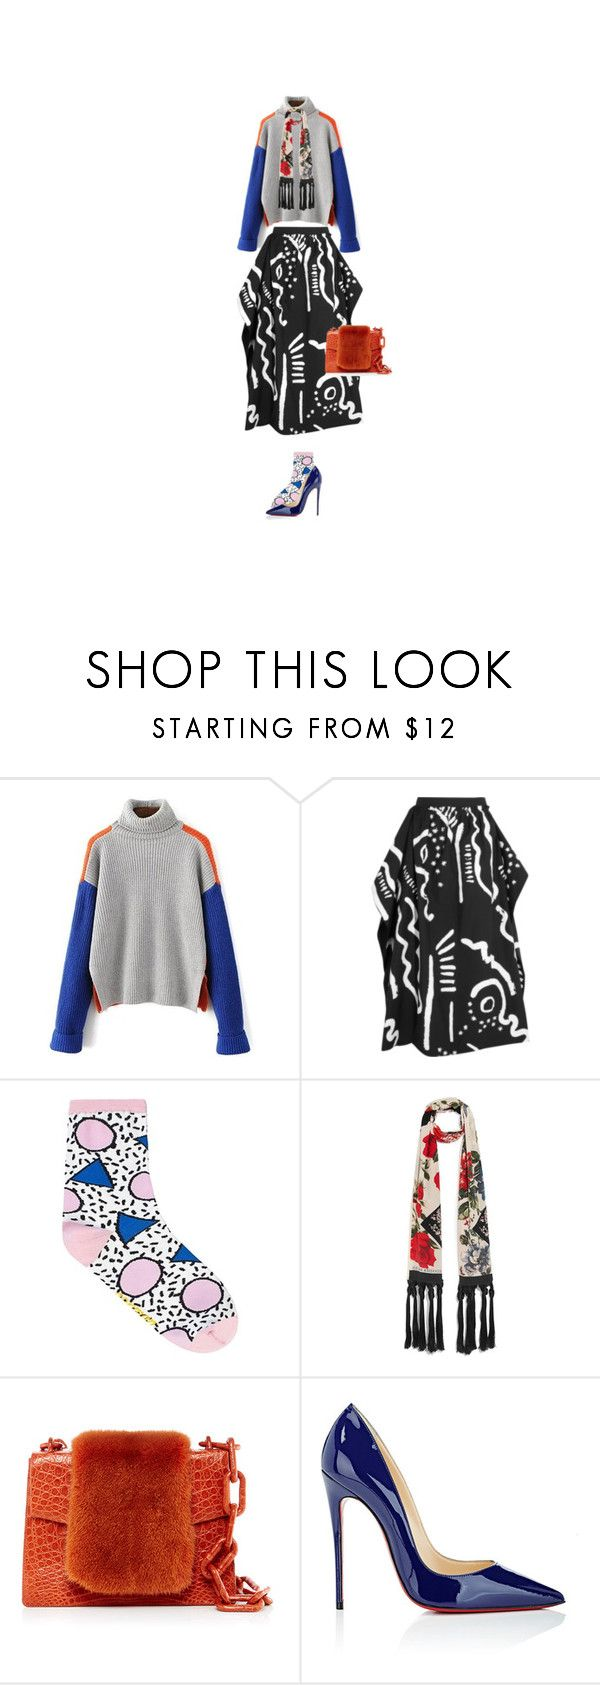 """080317"" by y1232189 ❤ liked on Polyvore featuring Isa Arfen, Alexander McQueen, Nancy Gonzalez and Christian Louboutin"